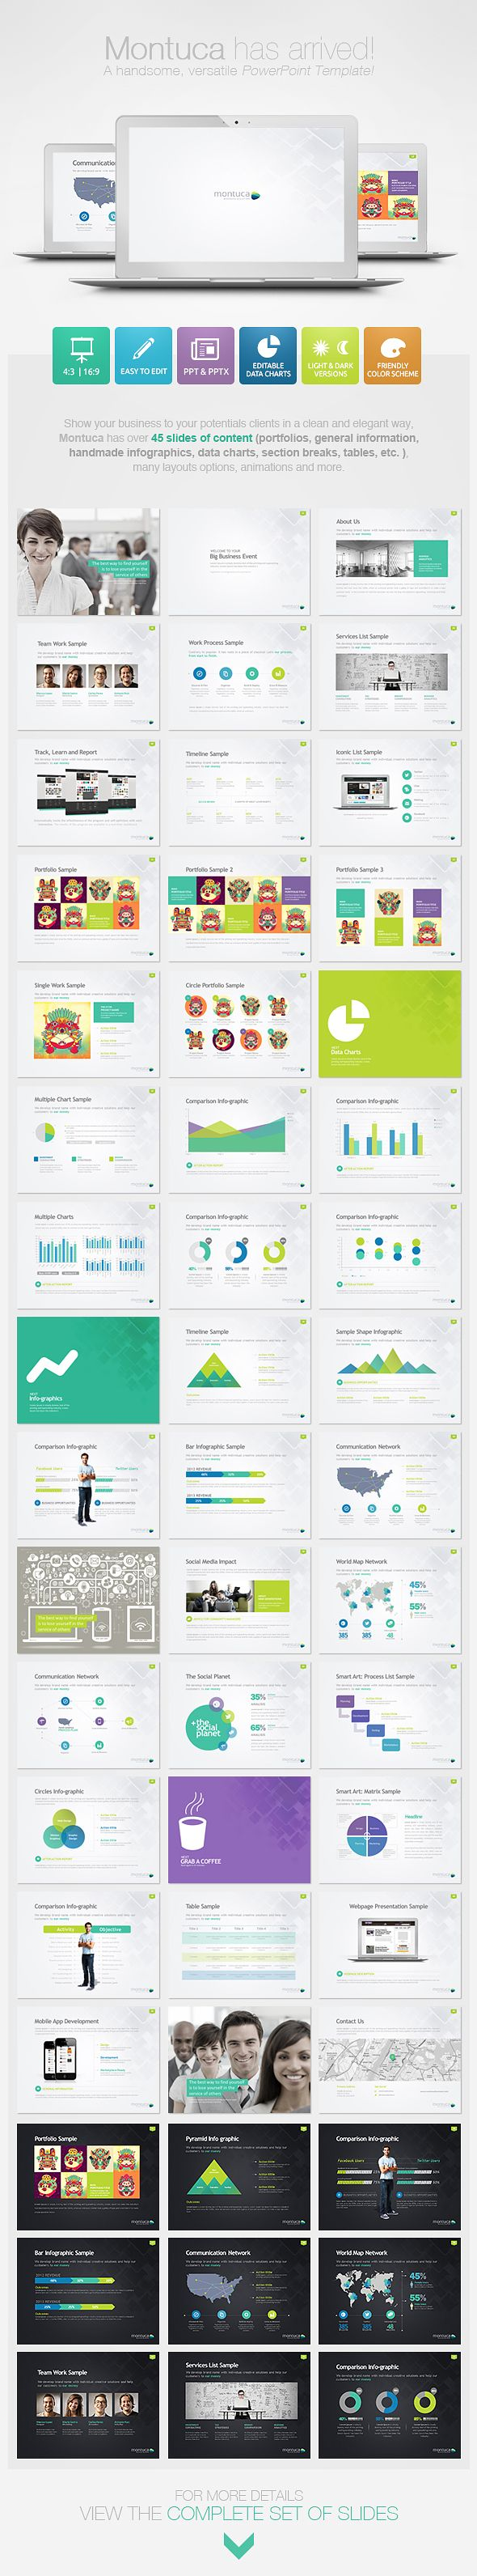 32 best presentation inspiration images on pinterest, Presentation templates